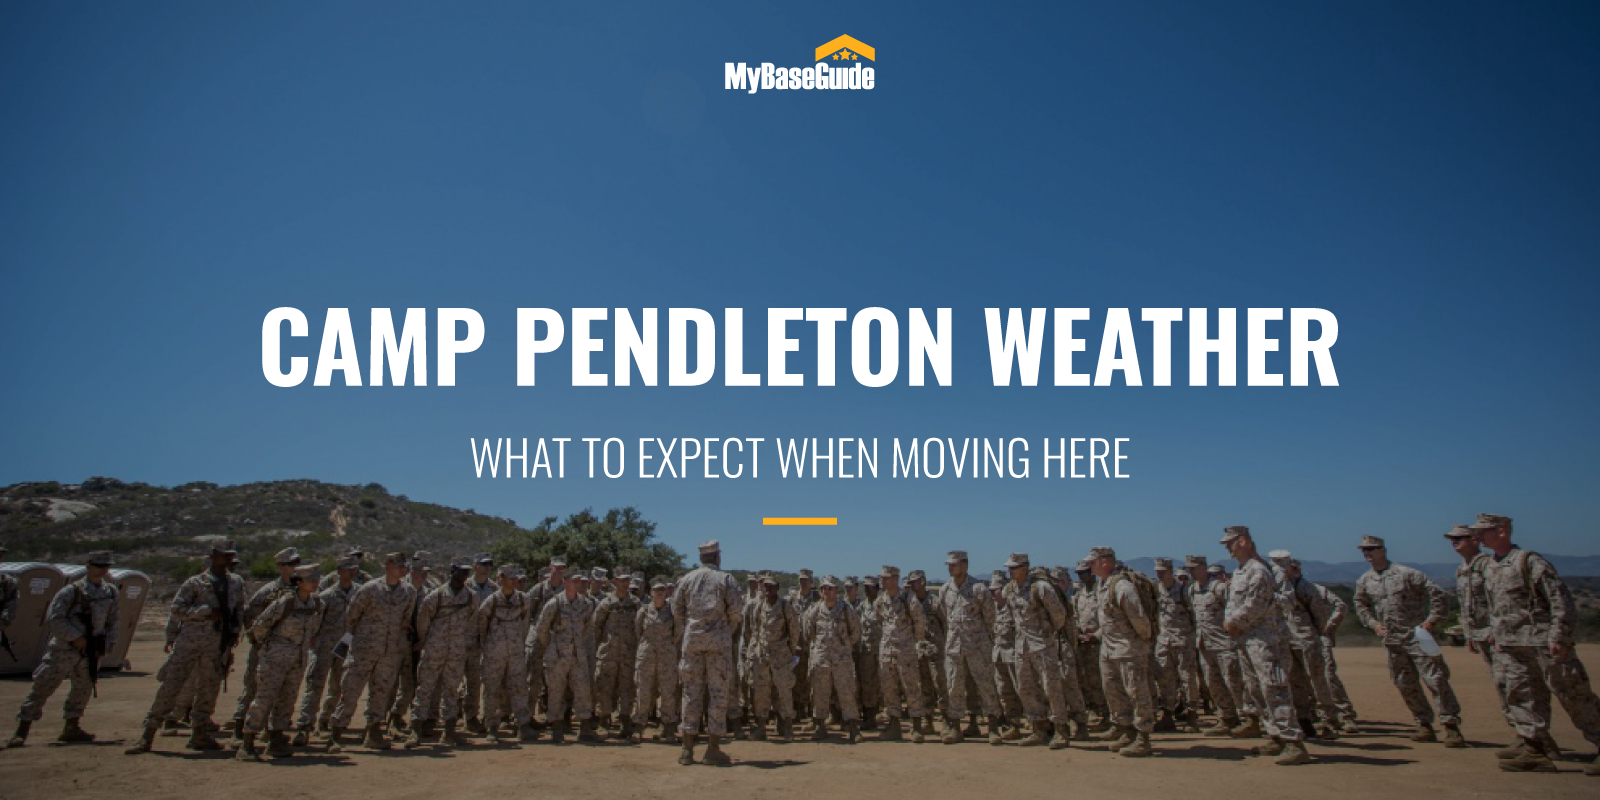 Camp Pendleton Weather